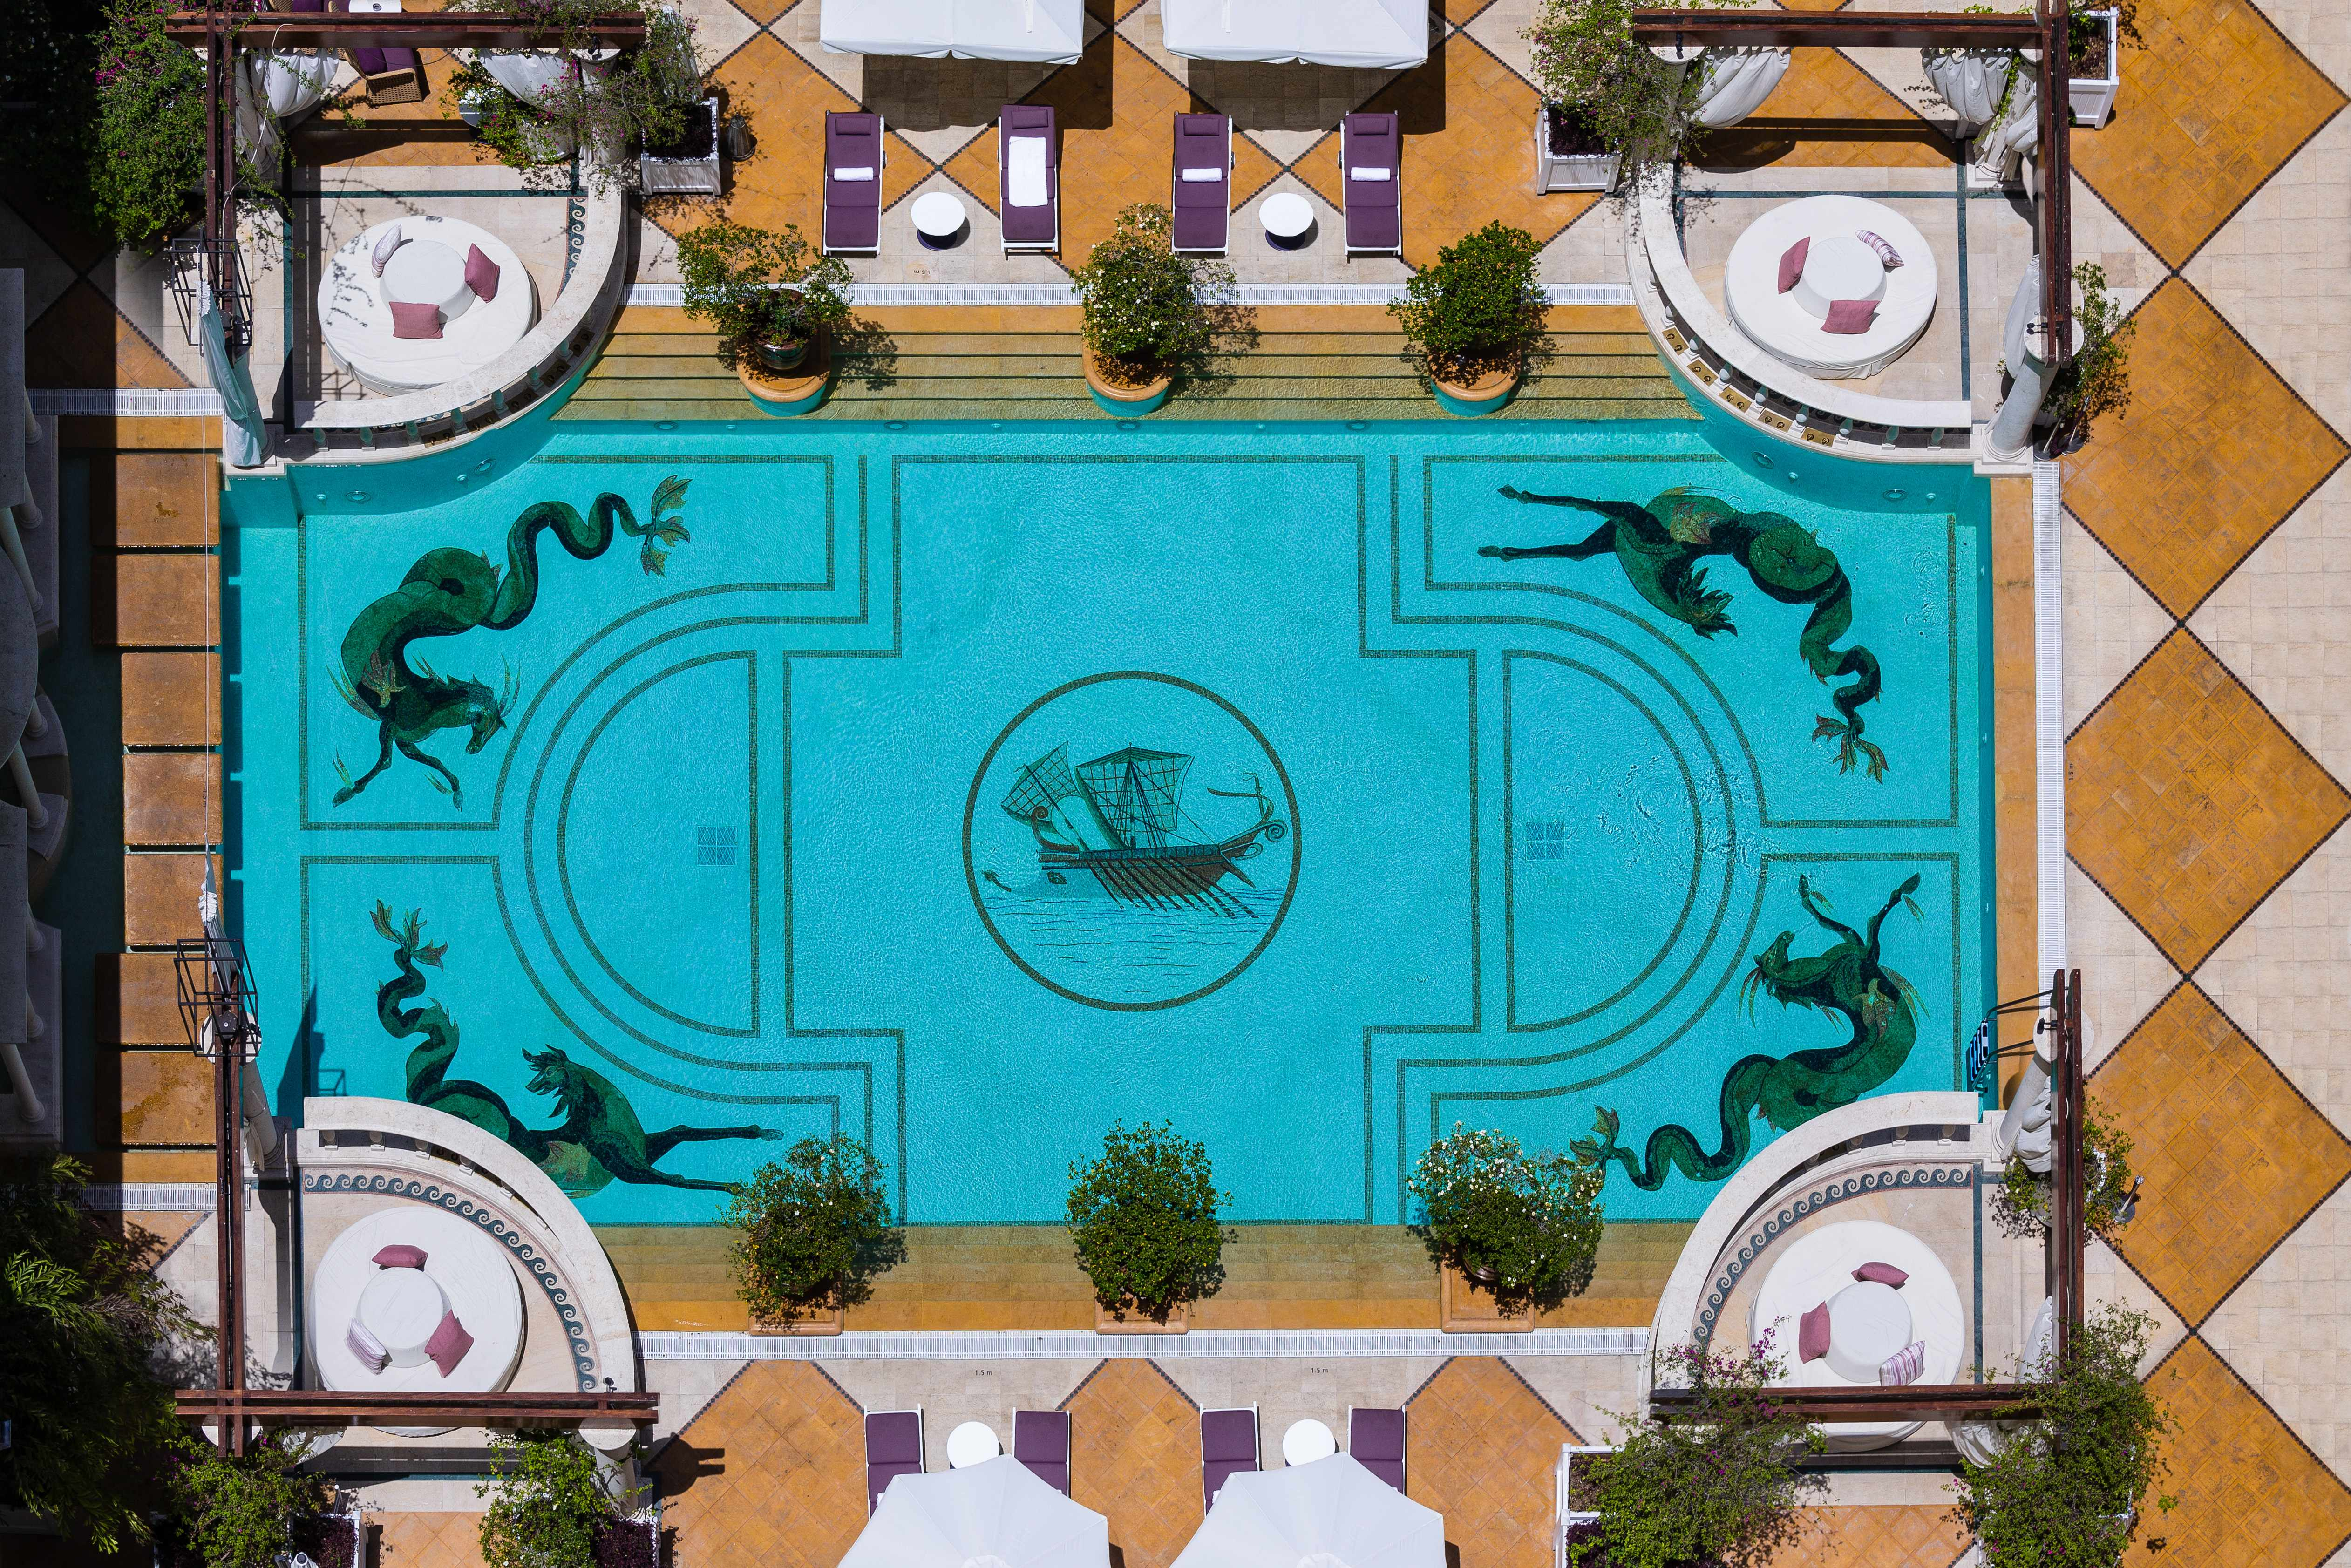 An overhead shot of a swimming pool